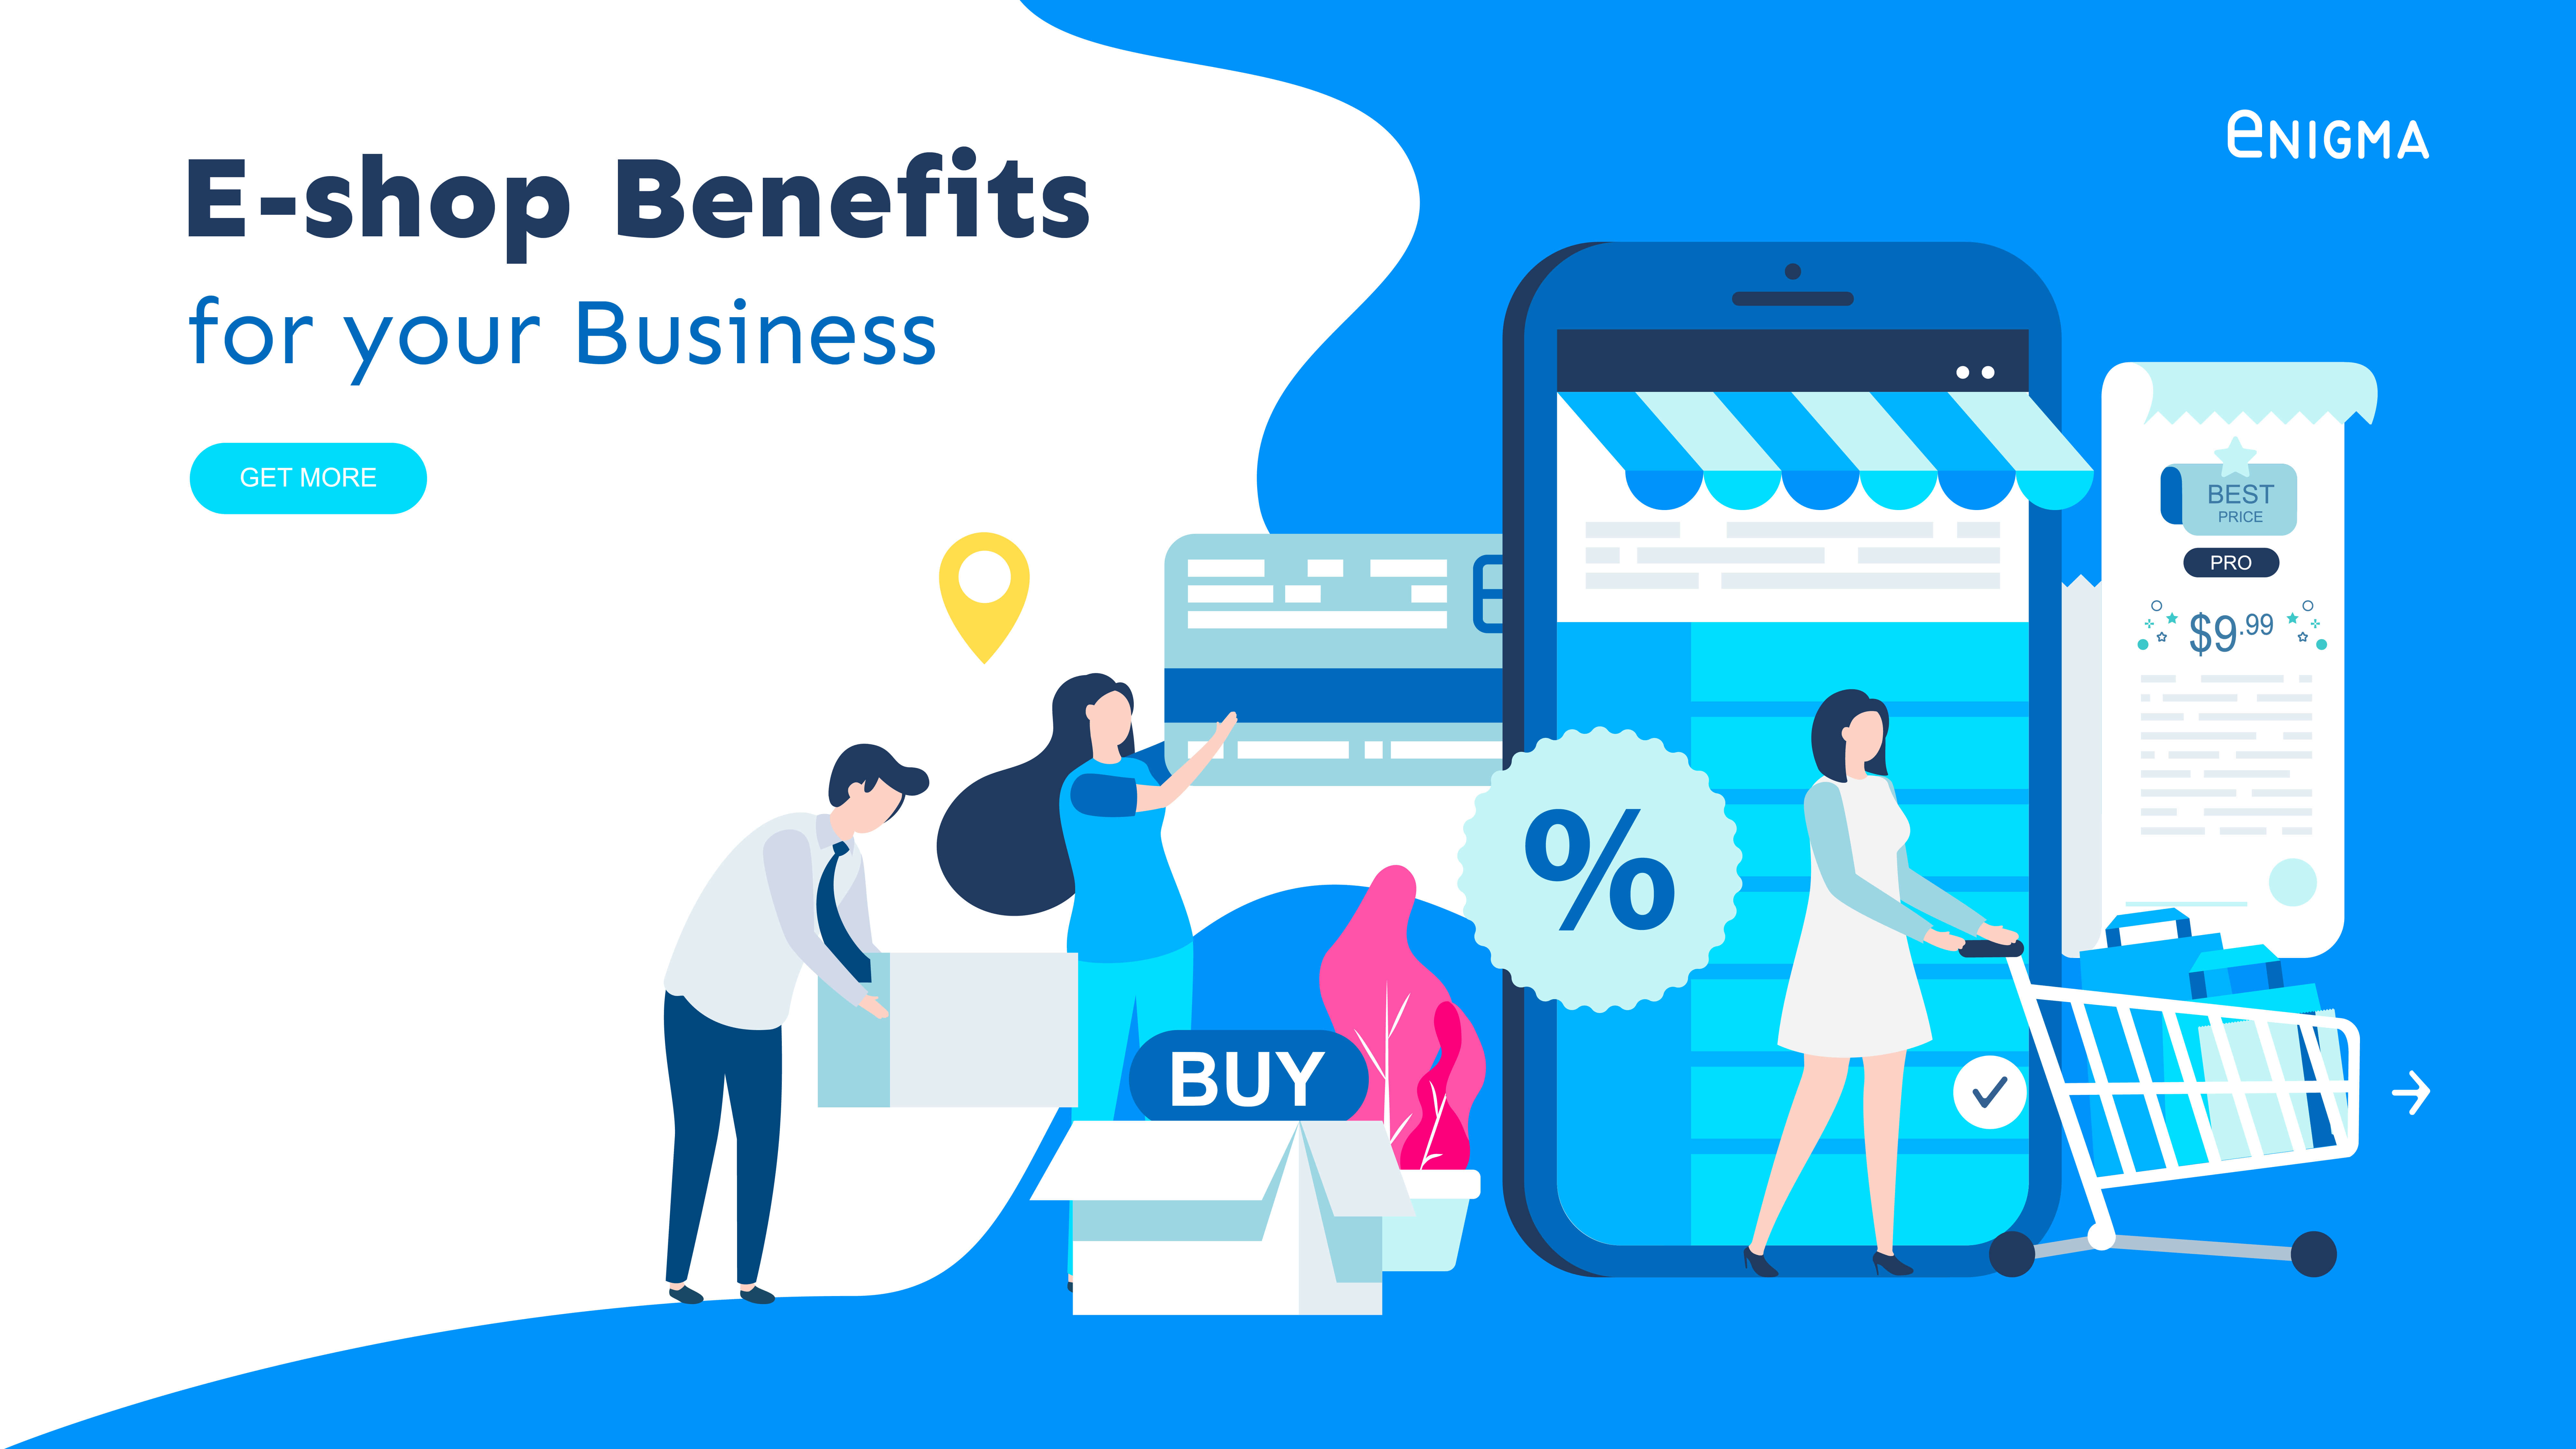 How an E-shop Benefits Your Business